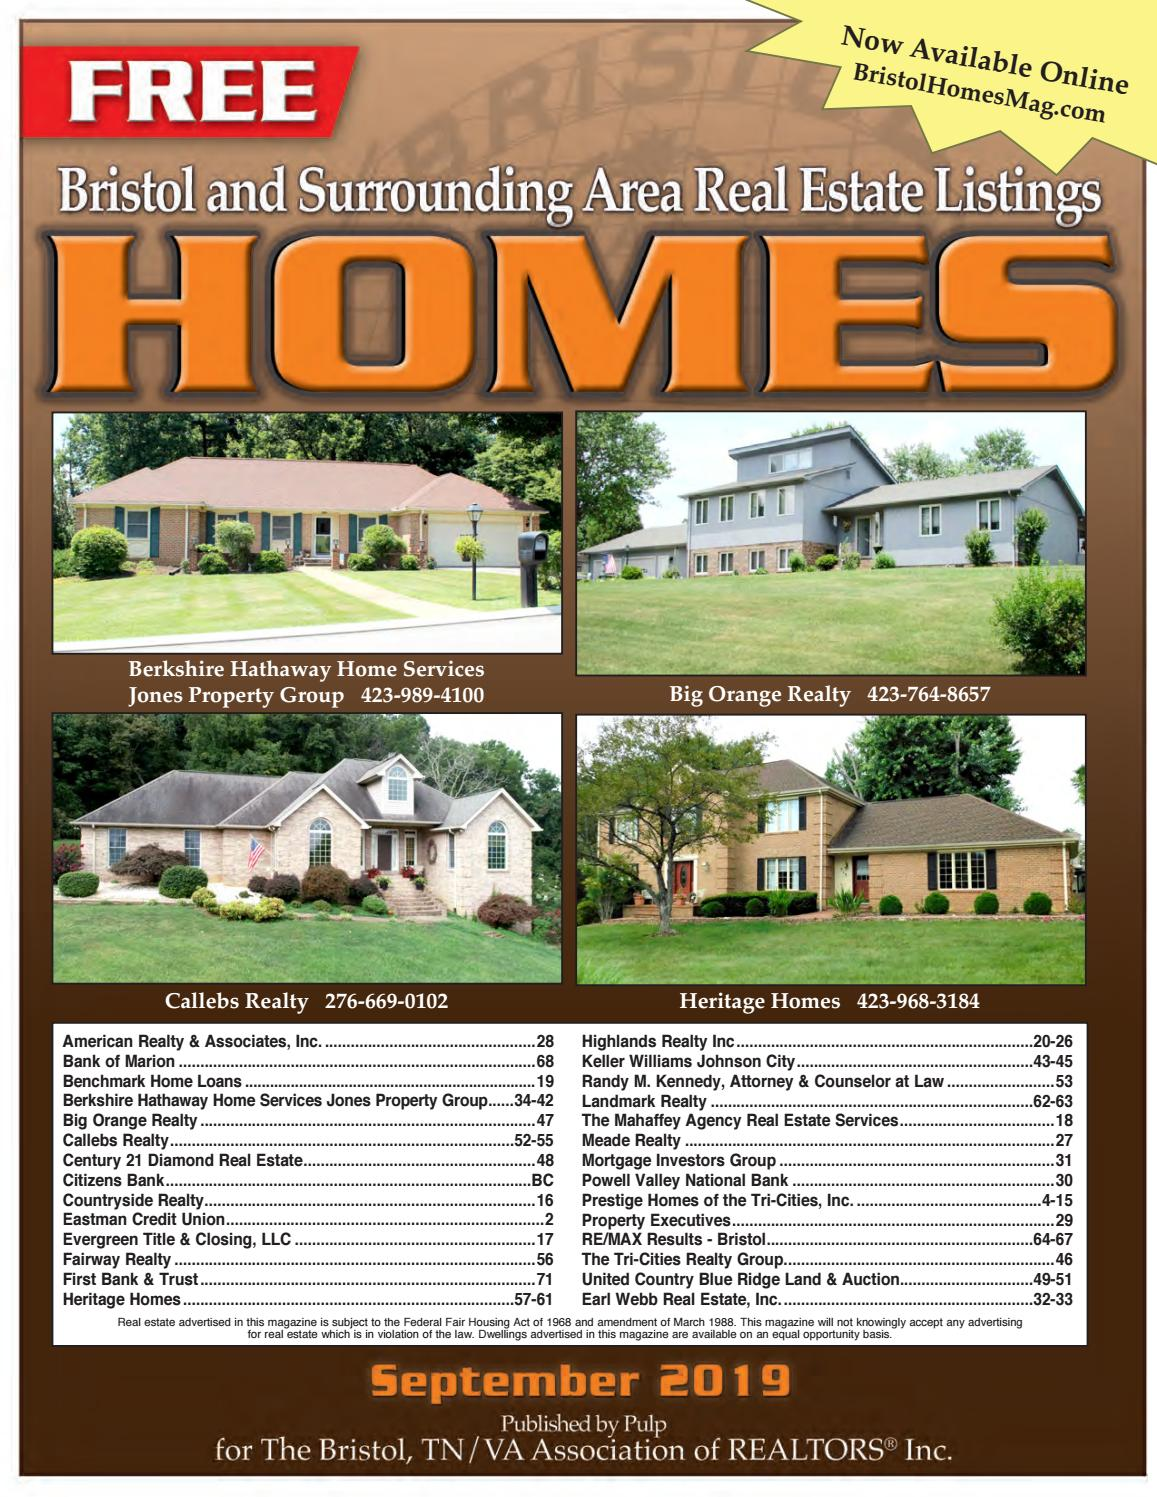 949 Twin Barns Rd, Greeneville, TN 37743 REO Home Details